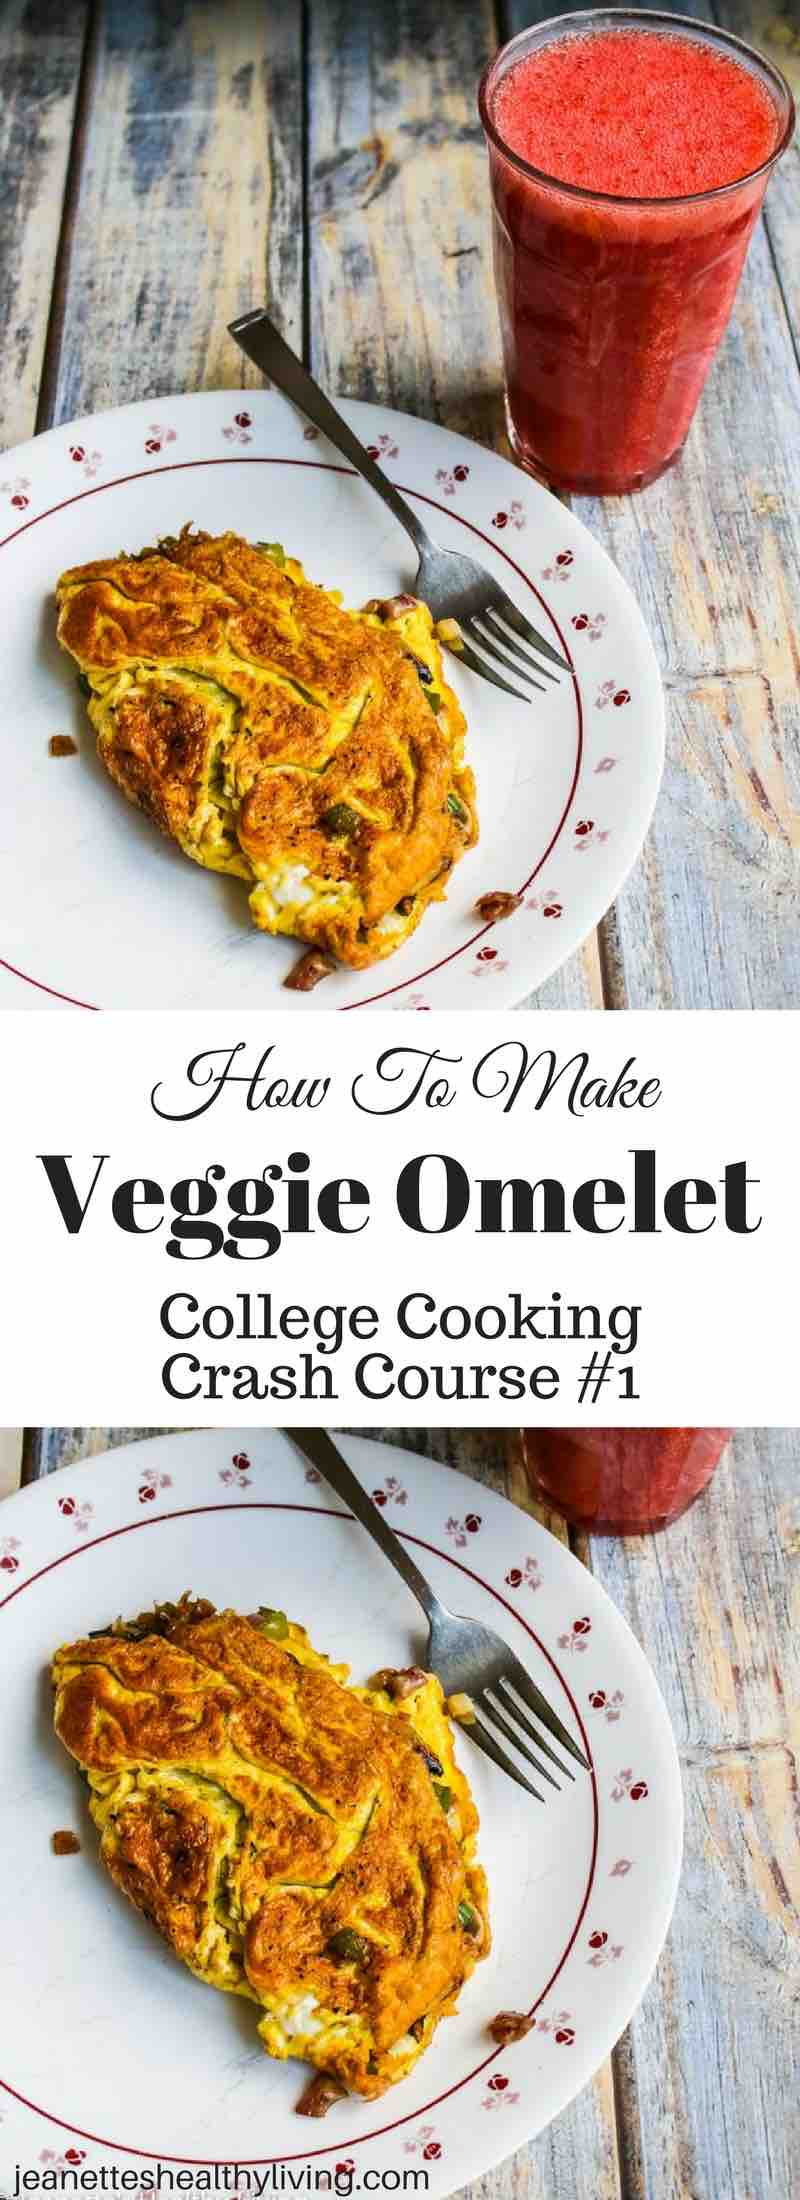 Kyle's First Veggie Omelet - college student crash cooking course